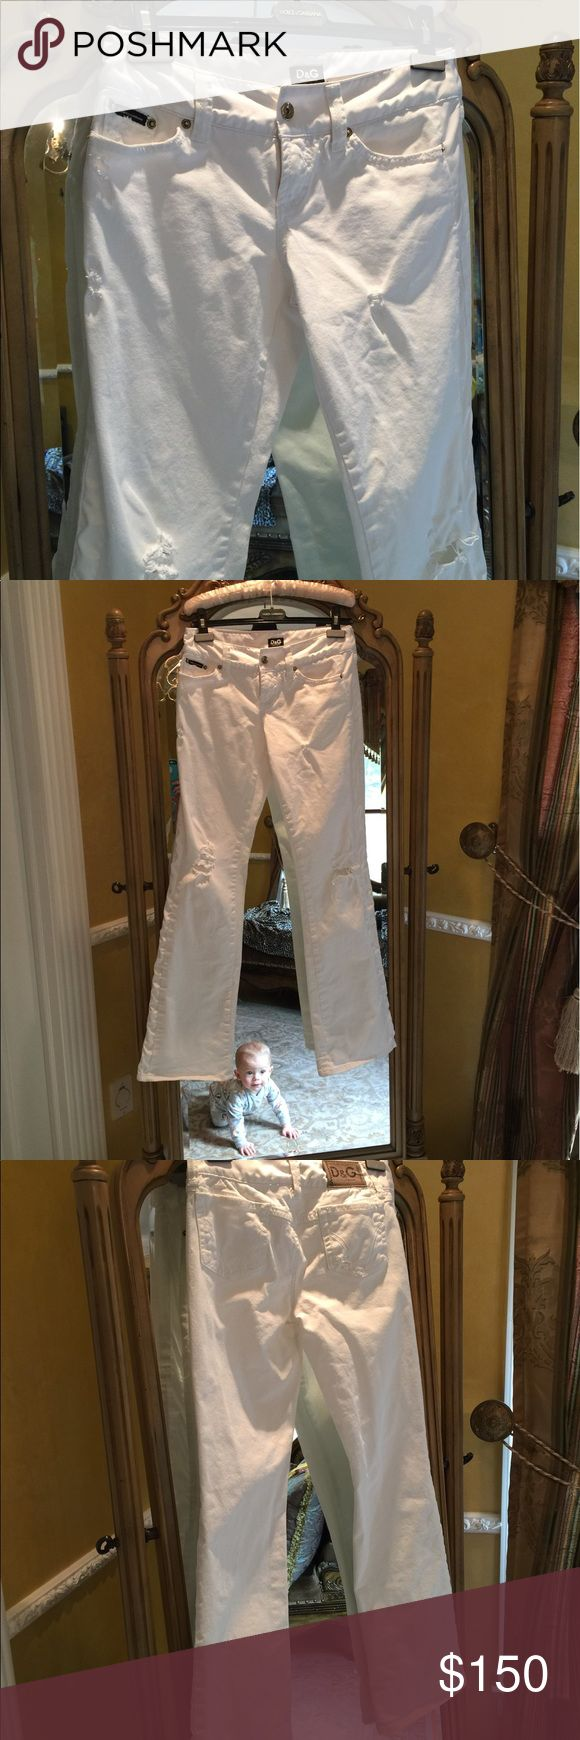 Dolce & Gabbana destroyed denim & satin jeans s 42 Beautiful low rise white denim jeans with tuxedo white satin like stripes down the side and at the waist band.  Only worn a few times.  Italia size 42 Dolce & Gabbana Jeans Straight Leg